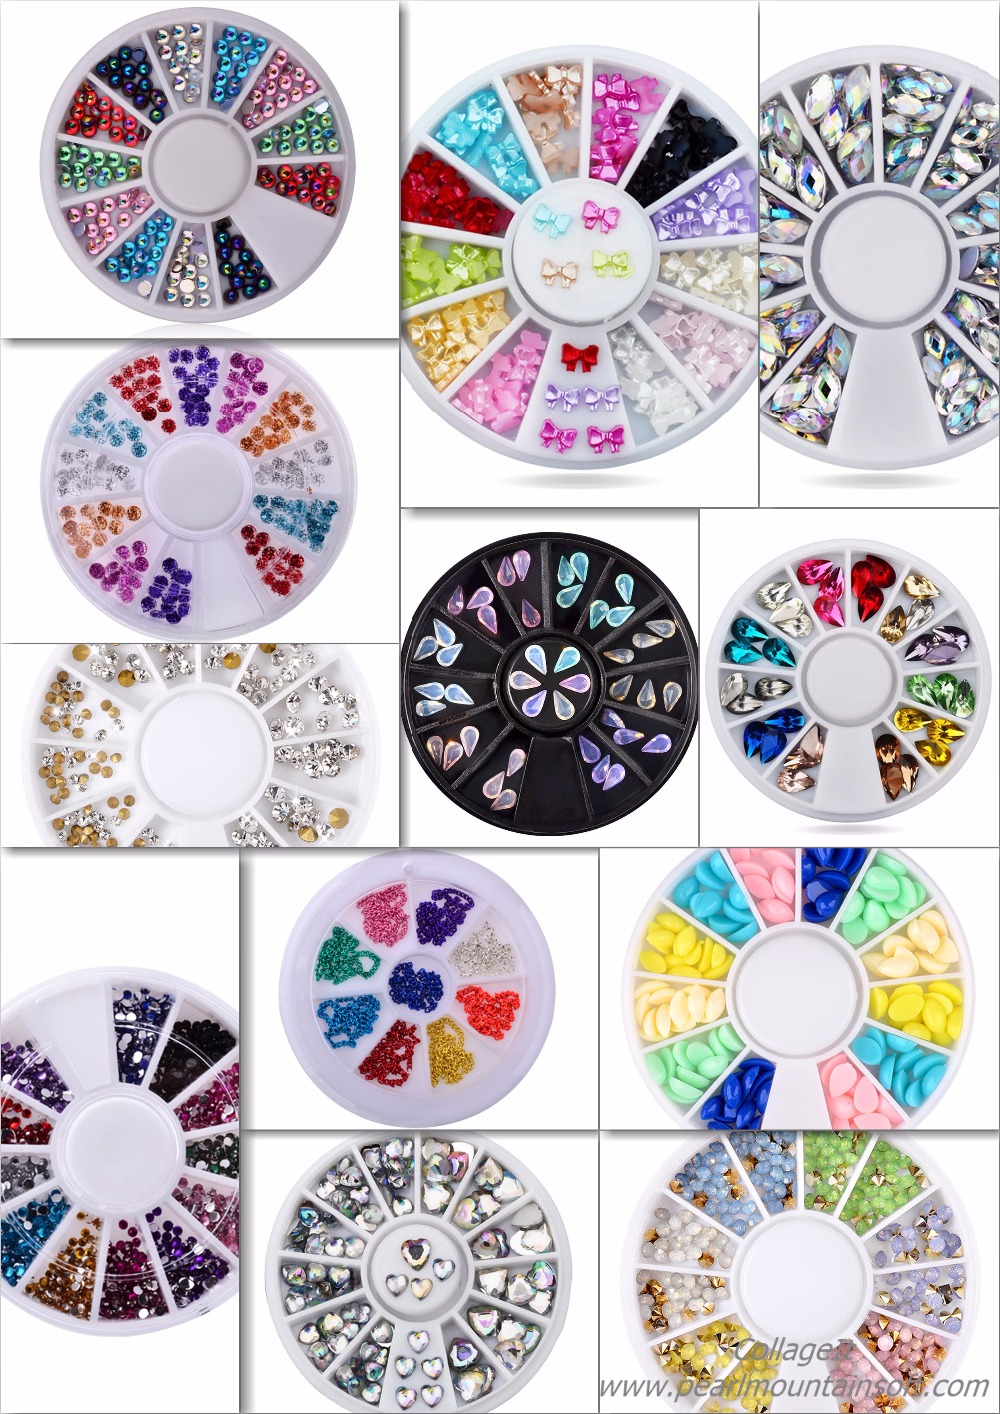 3D 6cm Cystal Colourful Nail Art Decoration Wheel,Acrylic Resin Jelly Nail Art Rhinestones Different shapes Manicure Supplies